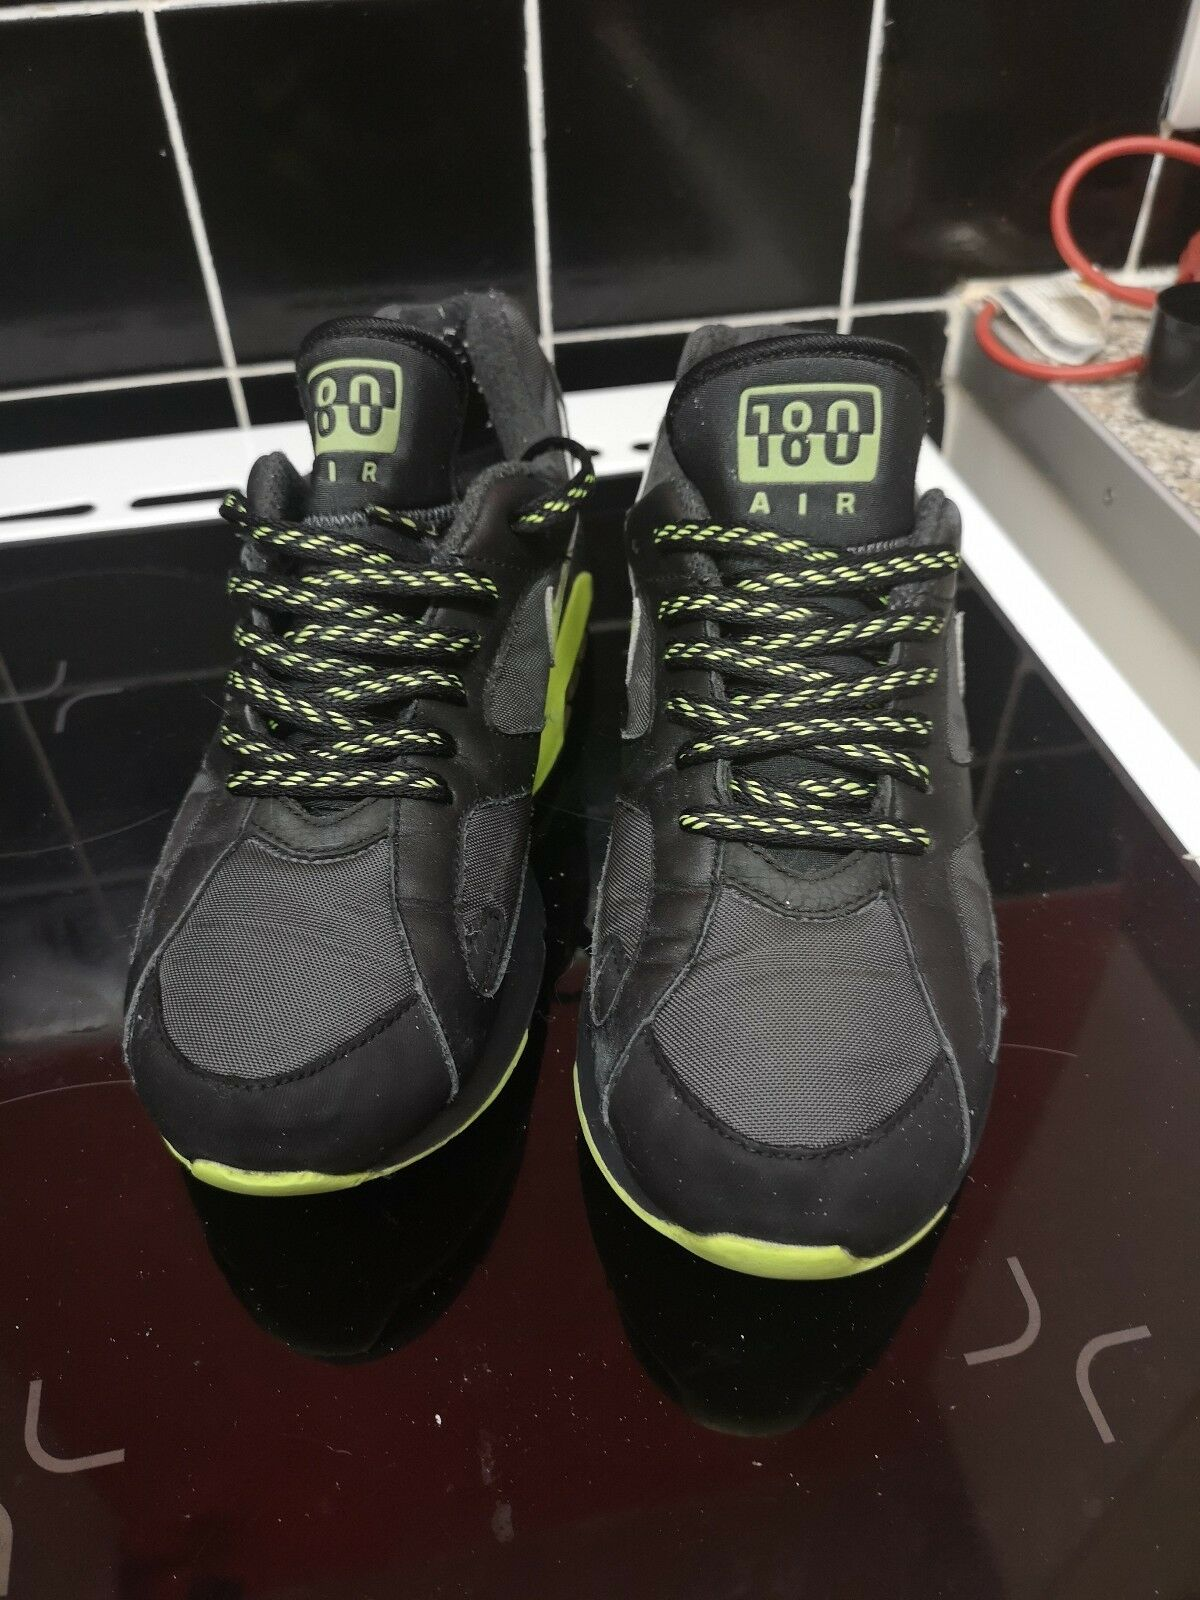 NIKE AIR 180 Noir/Volt RARE UK taille 9 STRUCTURE MAX 1 90 LIVESTRONG AQUAMARINE